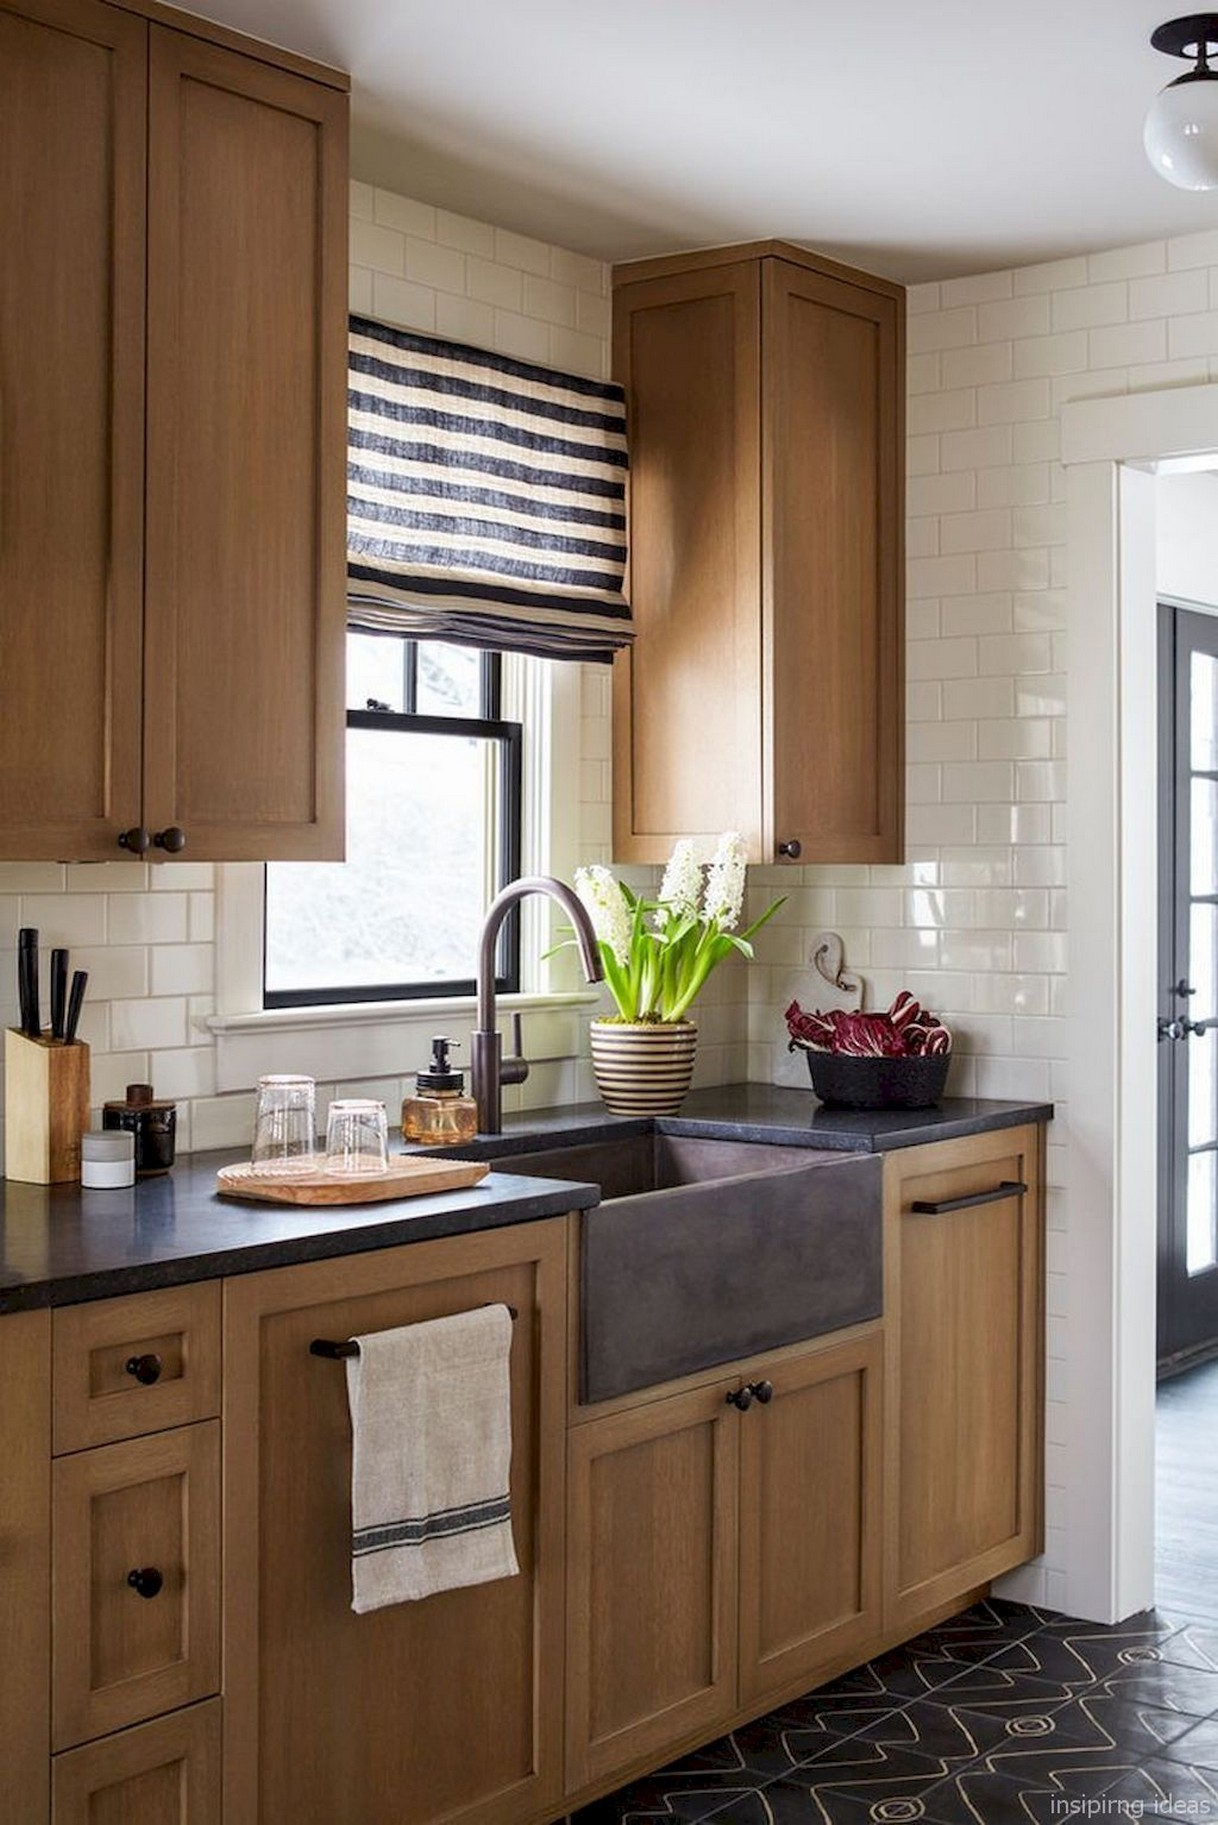 71 Painted Kitchen Cabinets Ideas For Home Decor 11